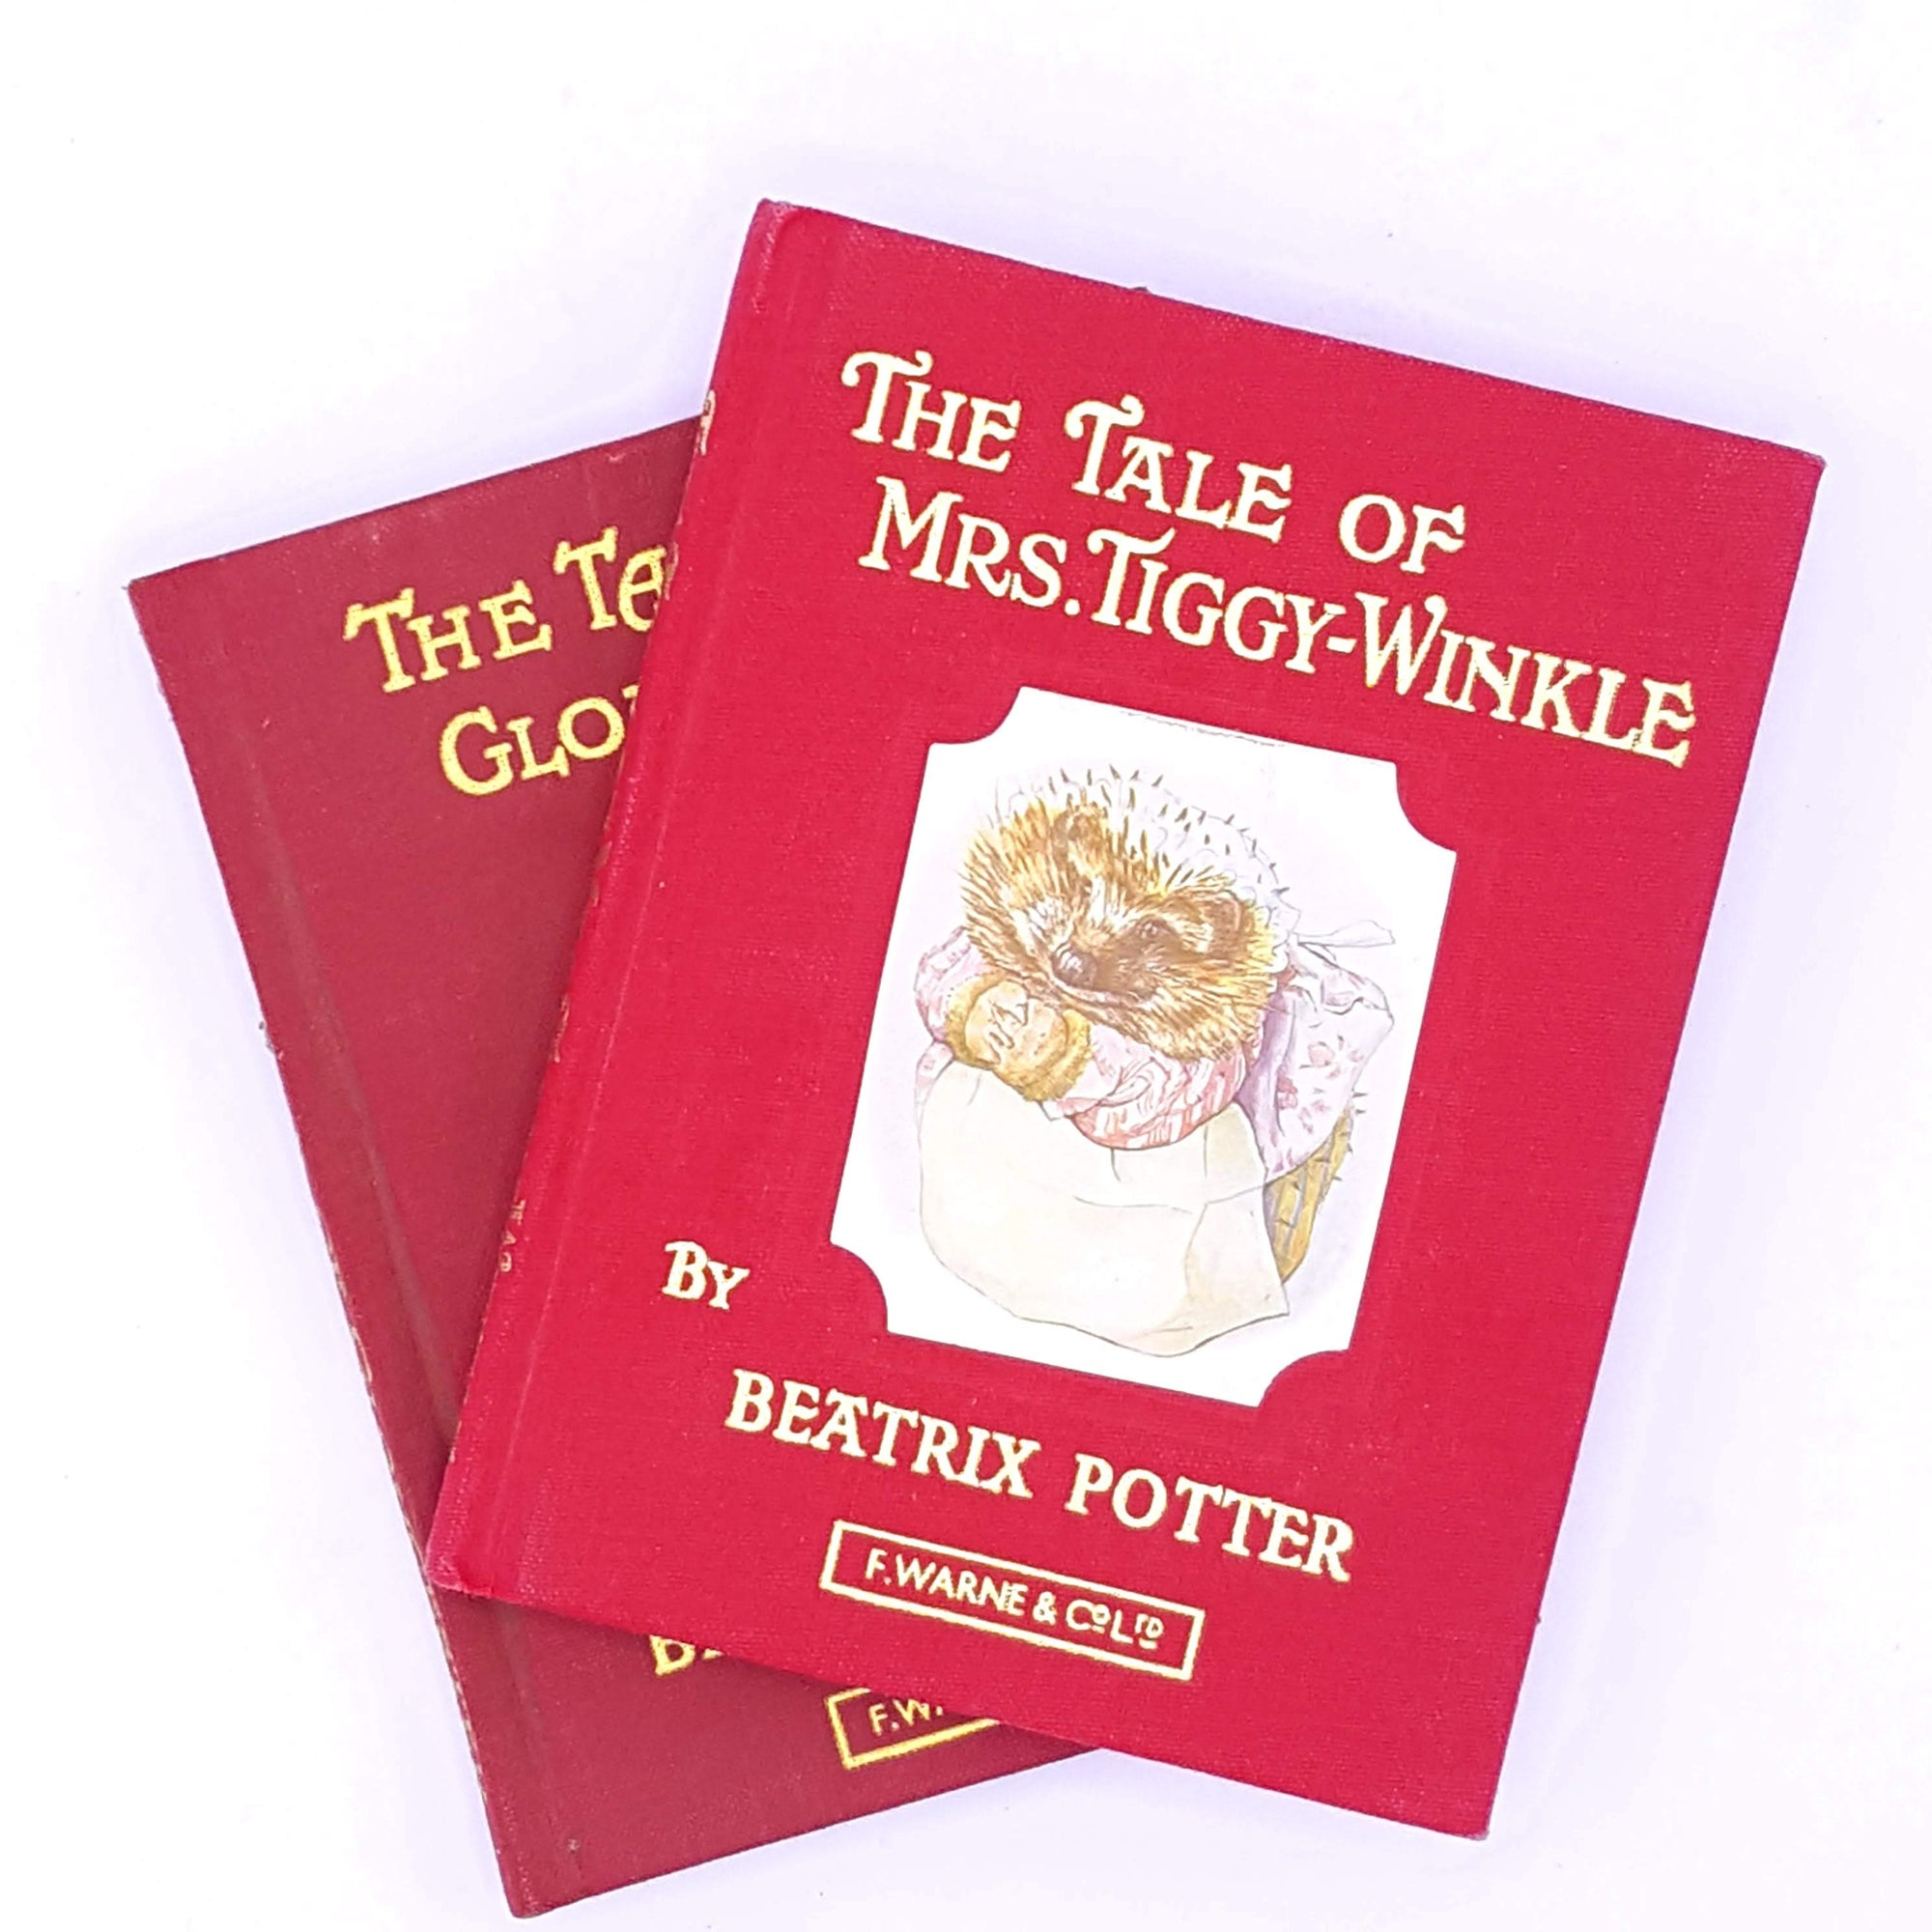 beatrix-potter-mrs-tiggy-winkle-gold-gilt-warne-collection-patterned-vintage-thrift-decorative-antique-old-tailor-of-gloucester-red-classic-books-country-house-library-red-